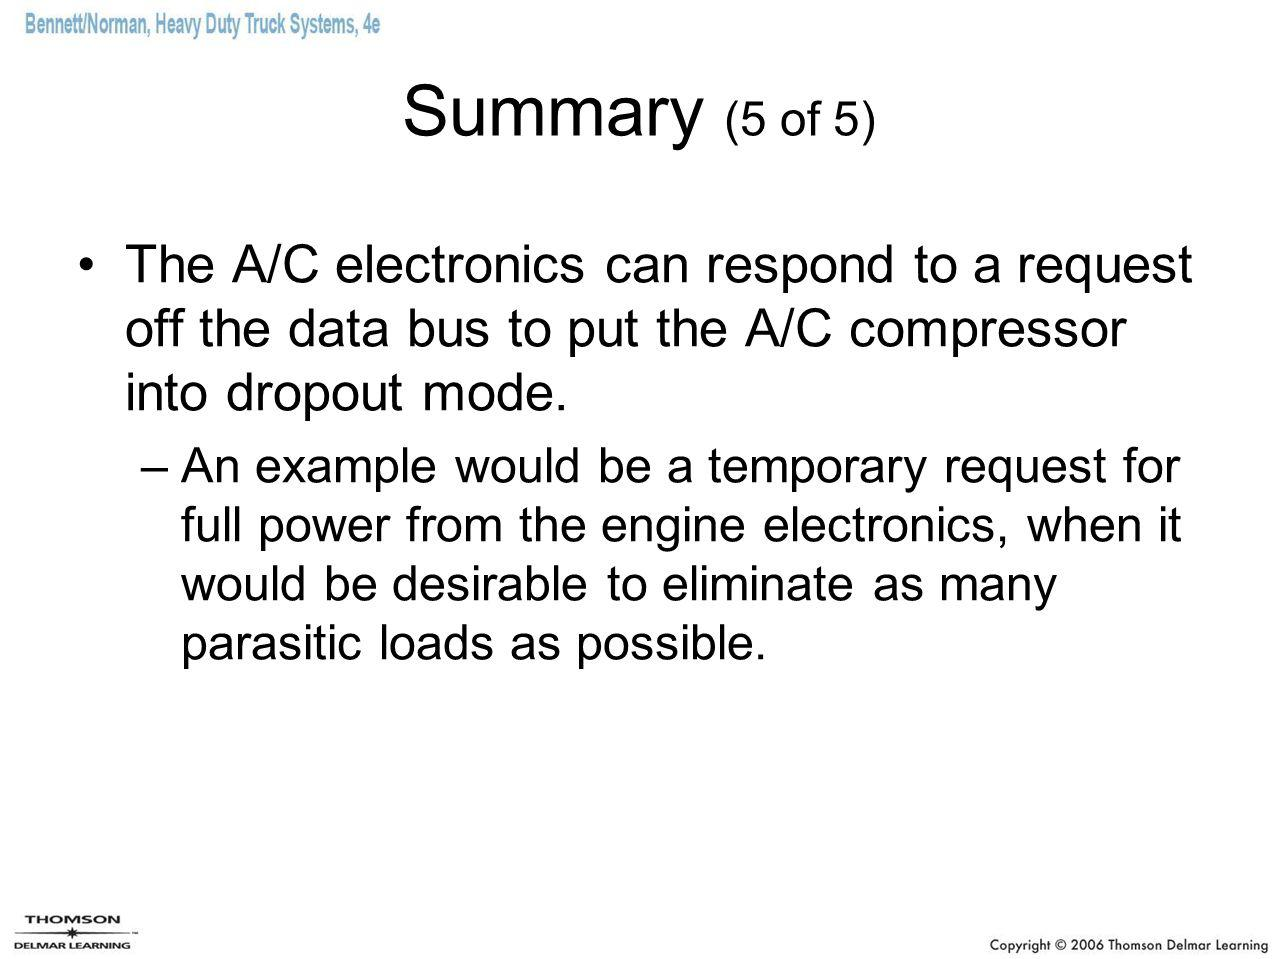 Summary (5 of 5) The A/C electronics can respond to a request off the data bus to put the A/C compressor into dropout mode.